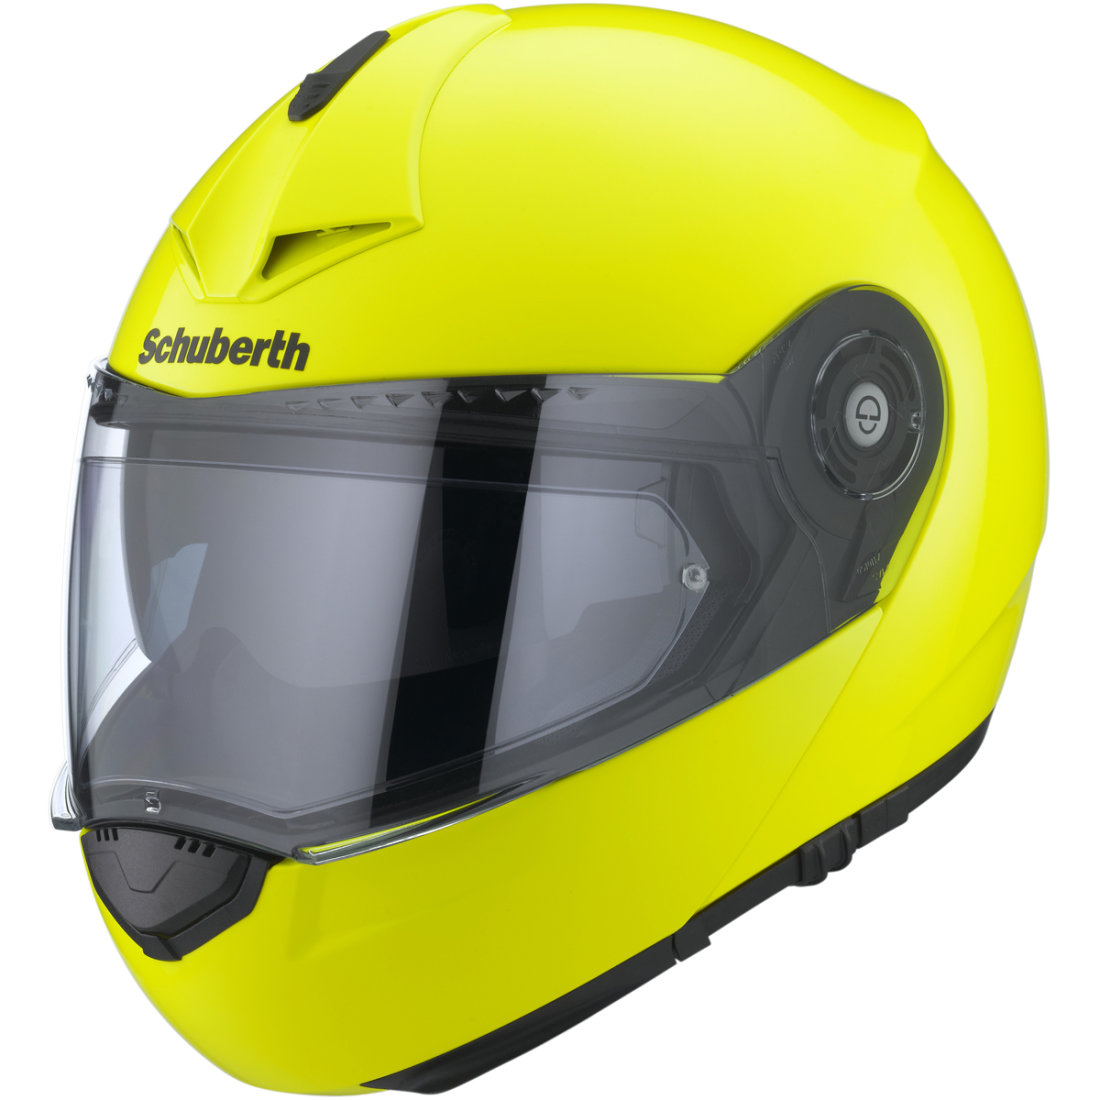 schuberth c3 pro yellow fluo helmet motocard. Black Bedroom Furniture Sets. Home Design Ideas